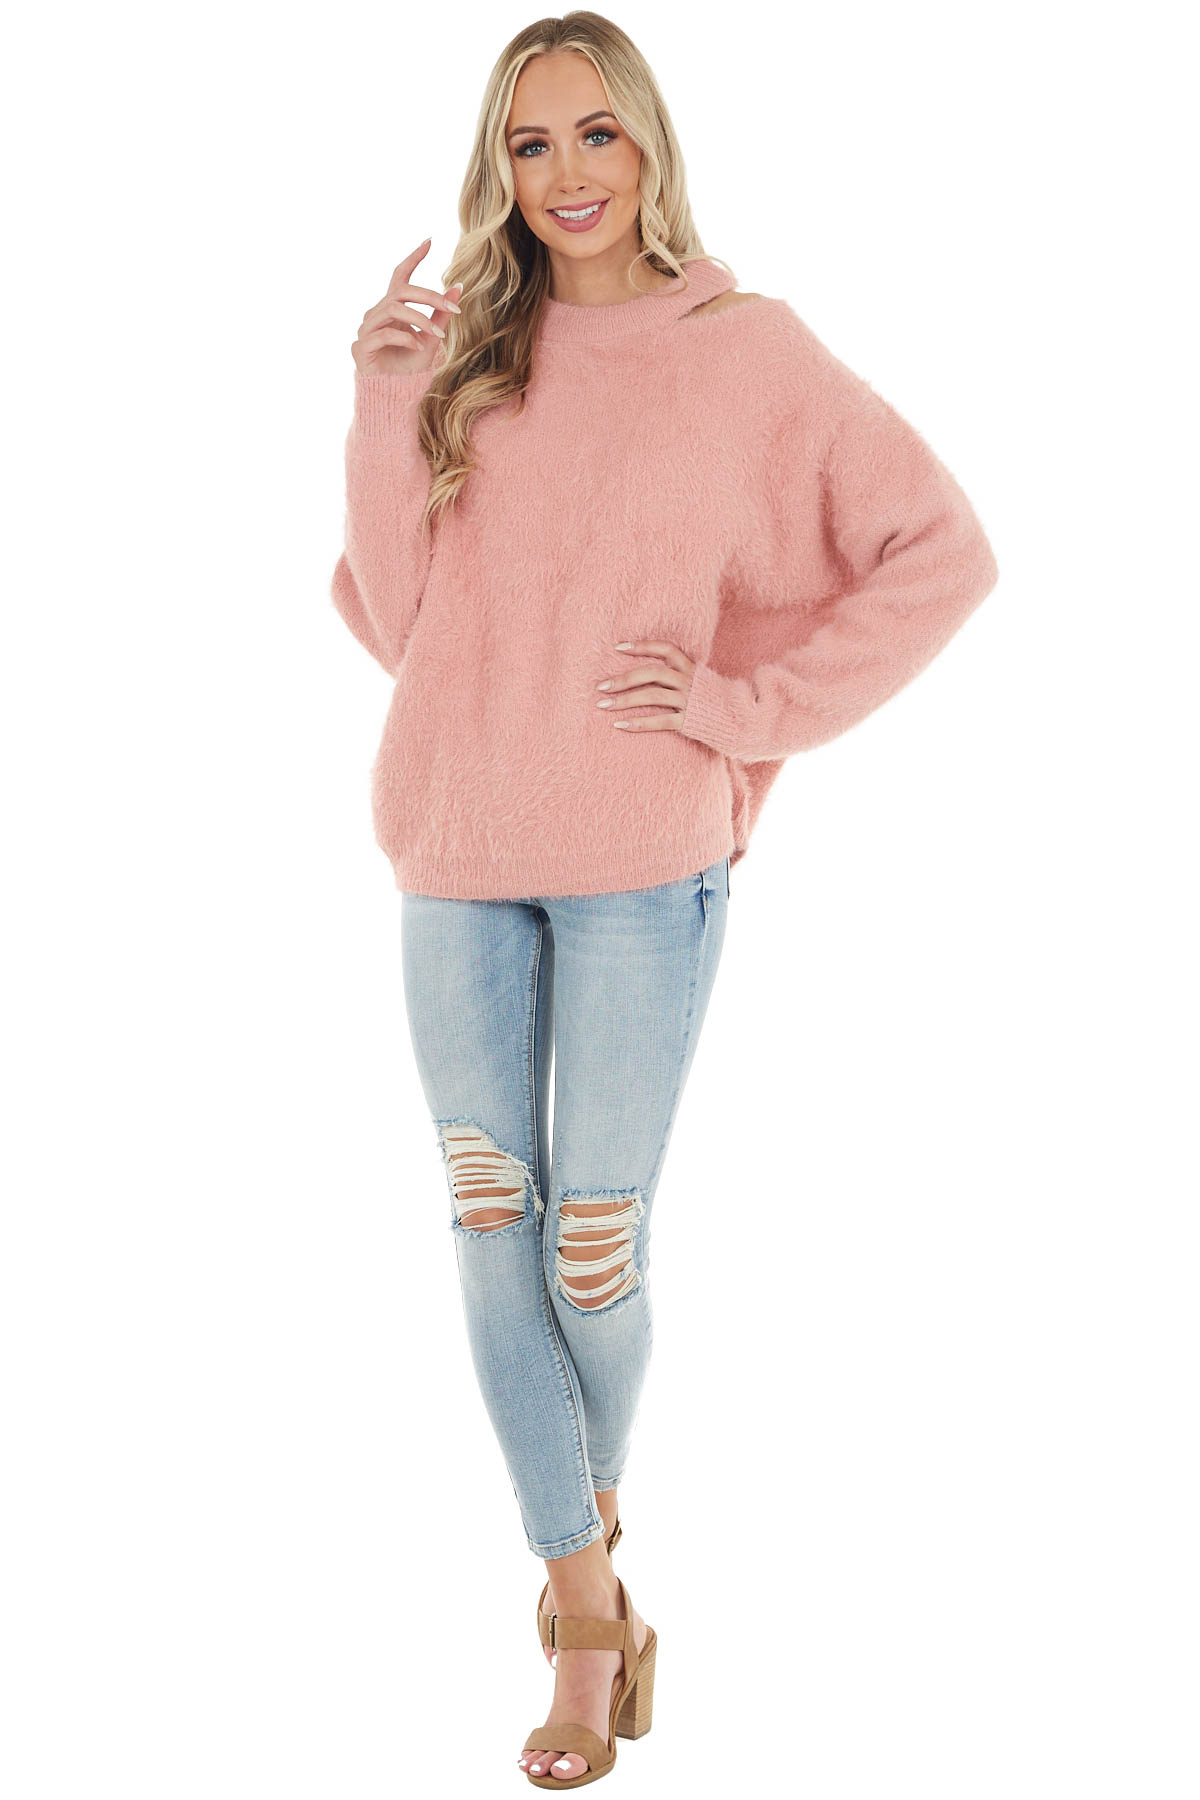 Dusty Blush Soft Fuzzy Knit Sweater with Cutout Detail